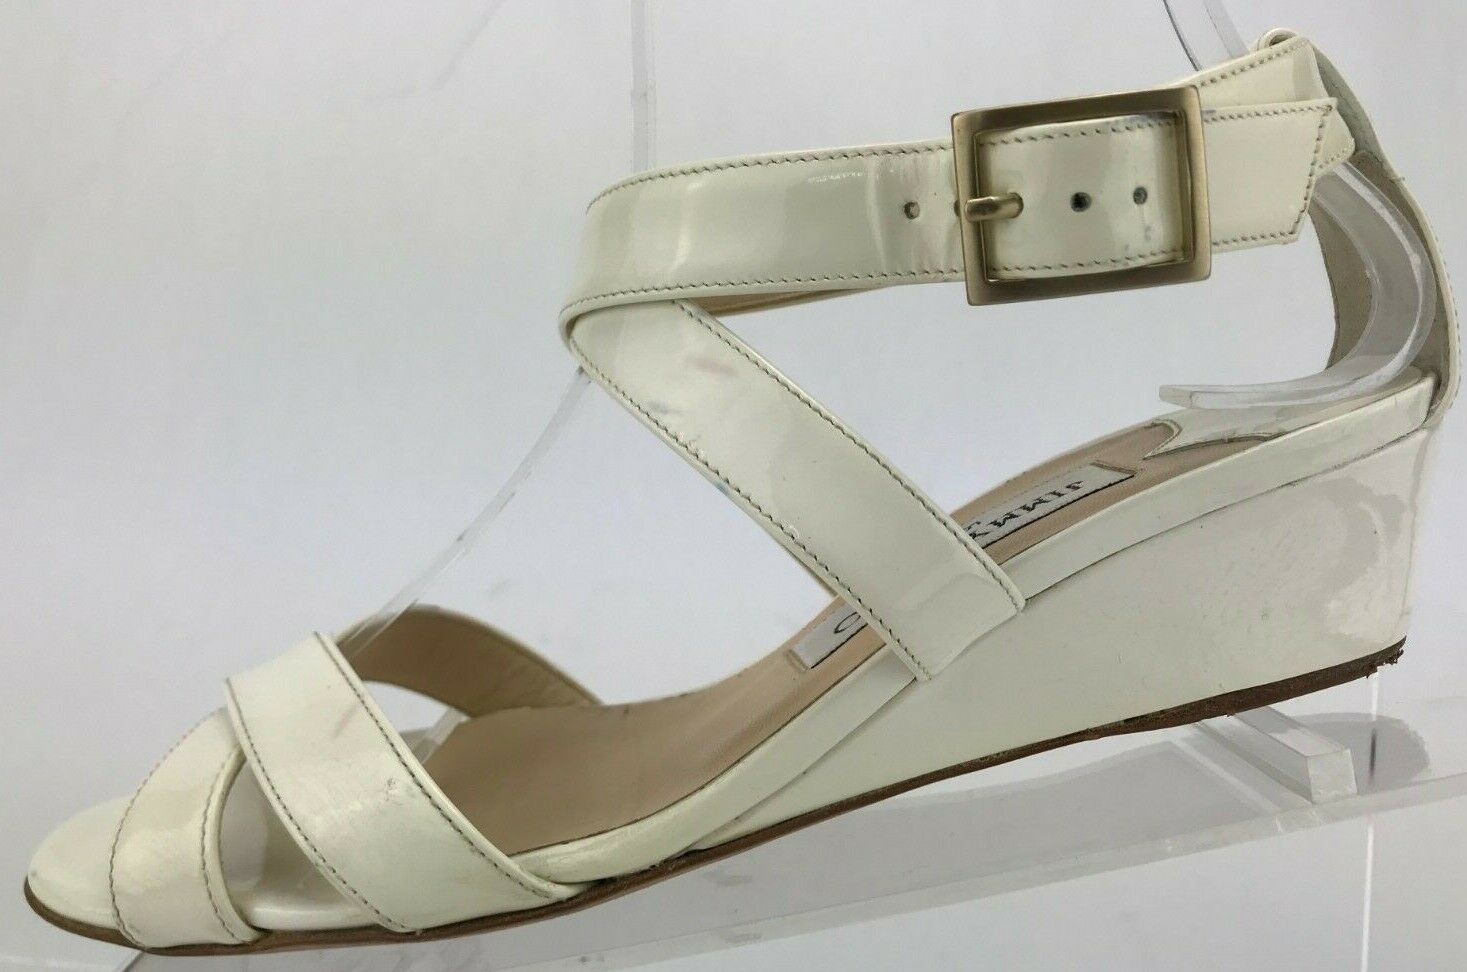 Jimmy Choo Wedge Sandals Connor White Open Toe Strappy shoes  Wmns 36.5,6.5